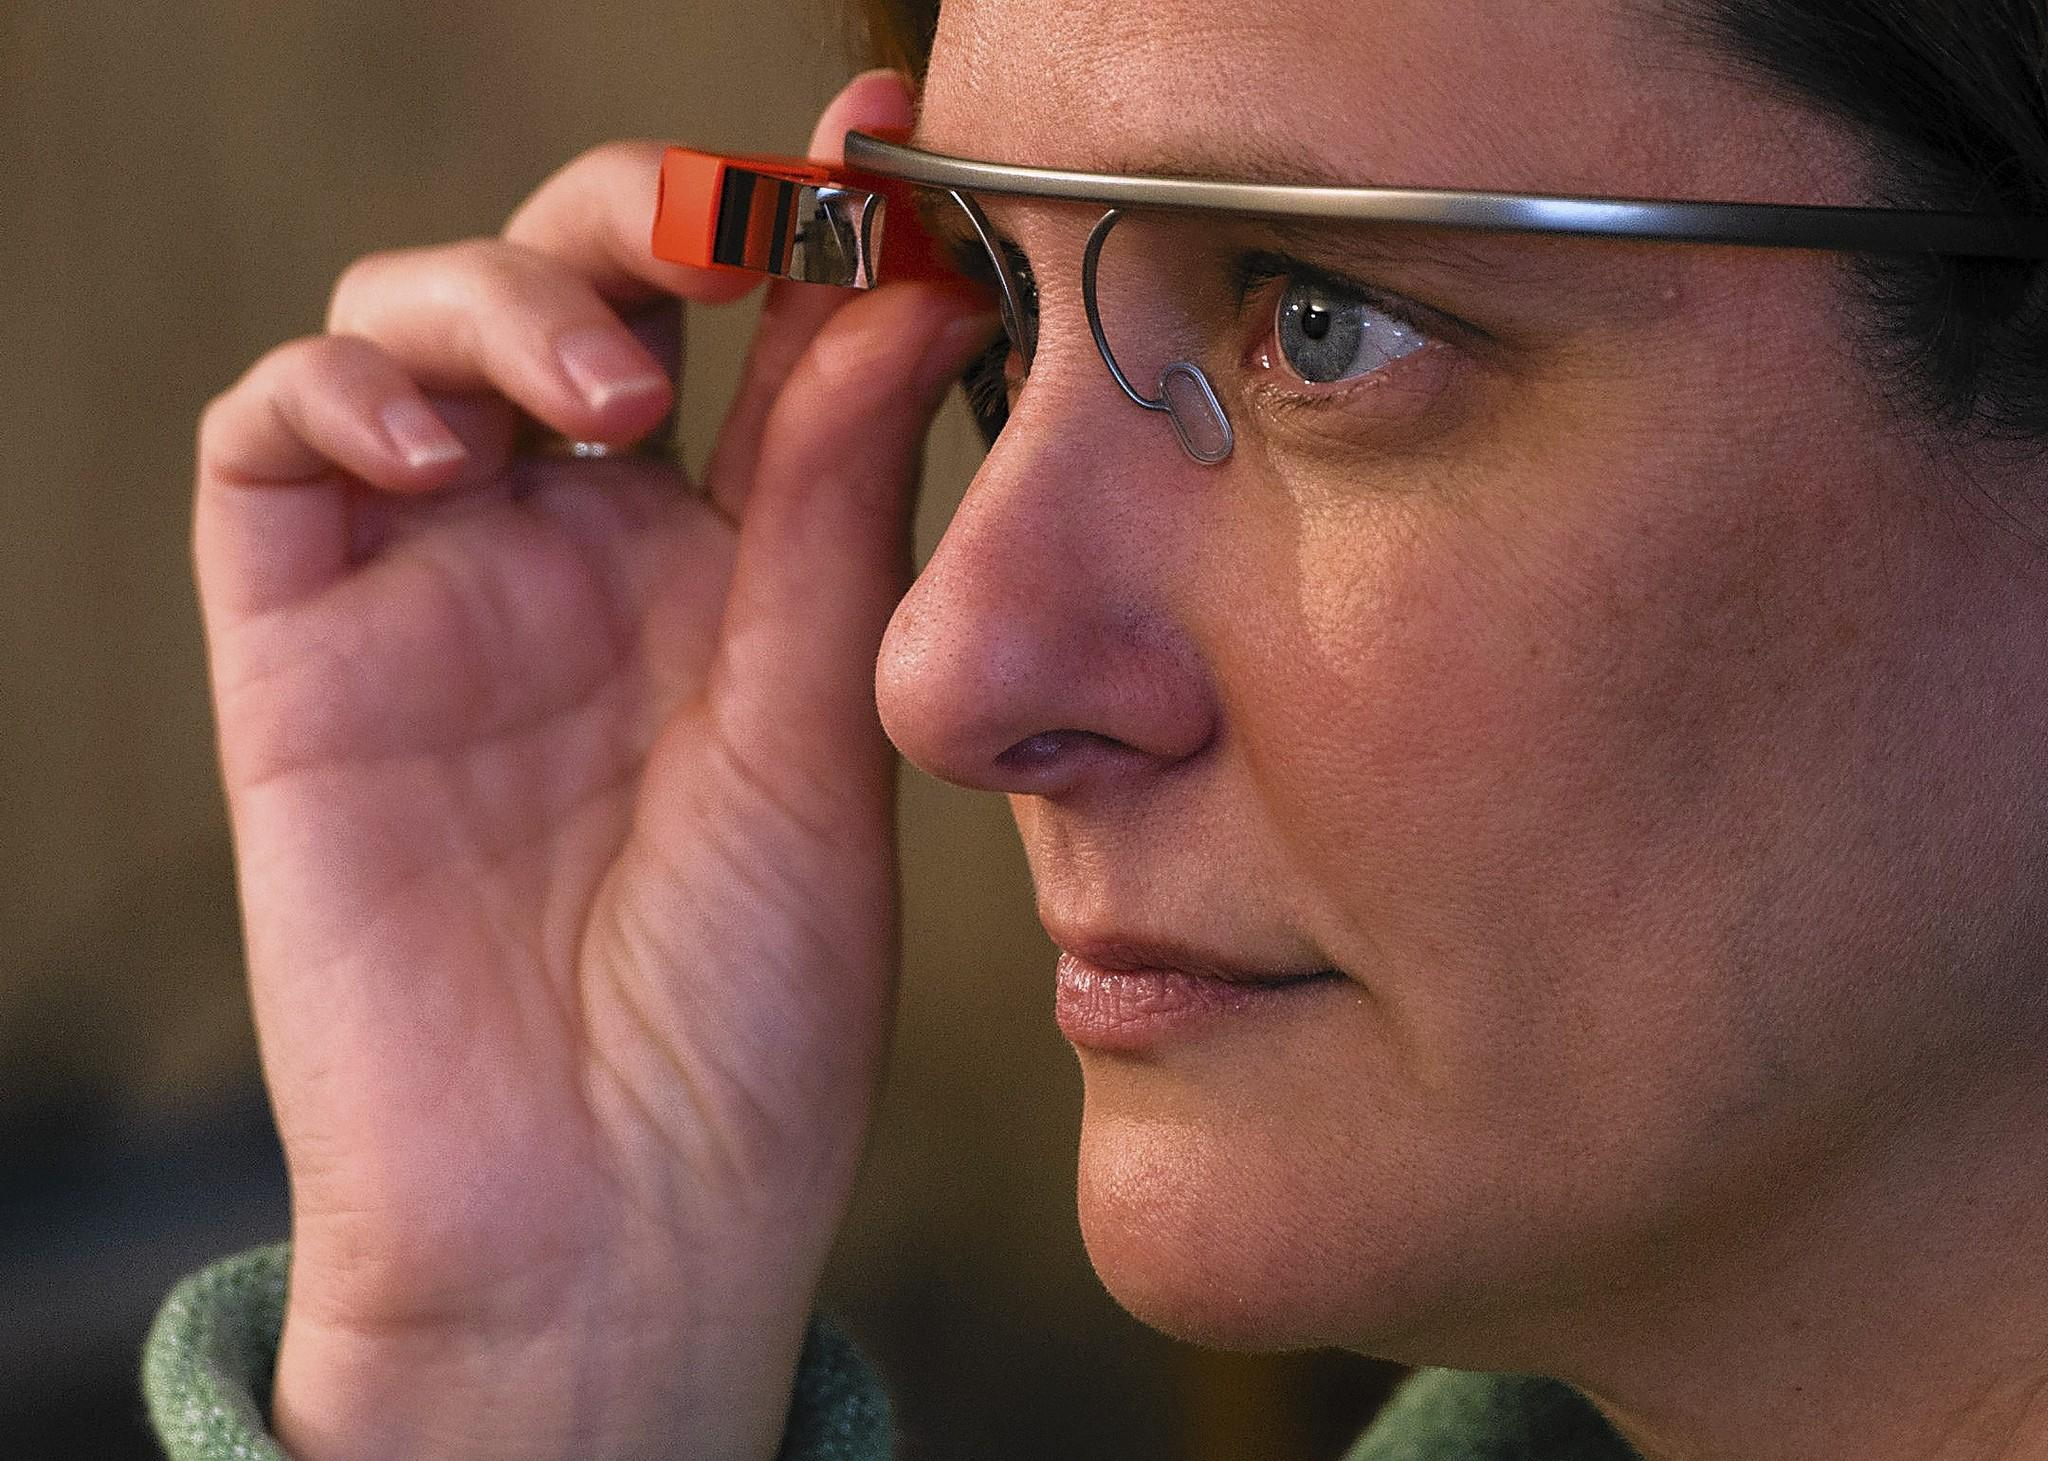 Sarah Brendle tests Google Glass in her Pennsburg home. Brendle has ALS, and just received a beta version of Google Glass to wear, test and make recommendations back to Google.